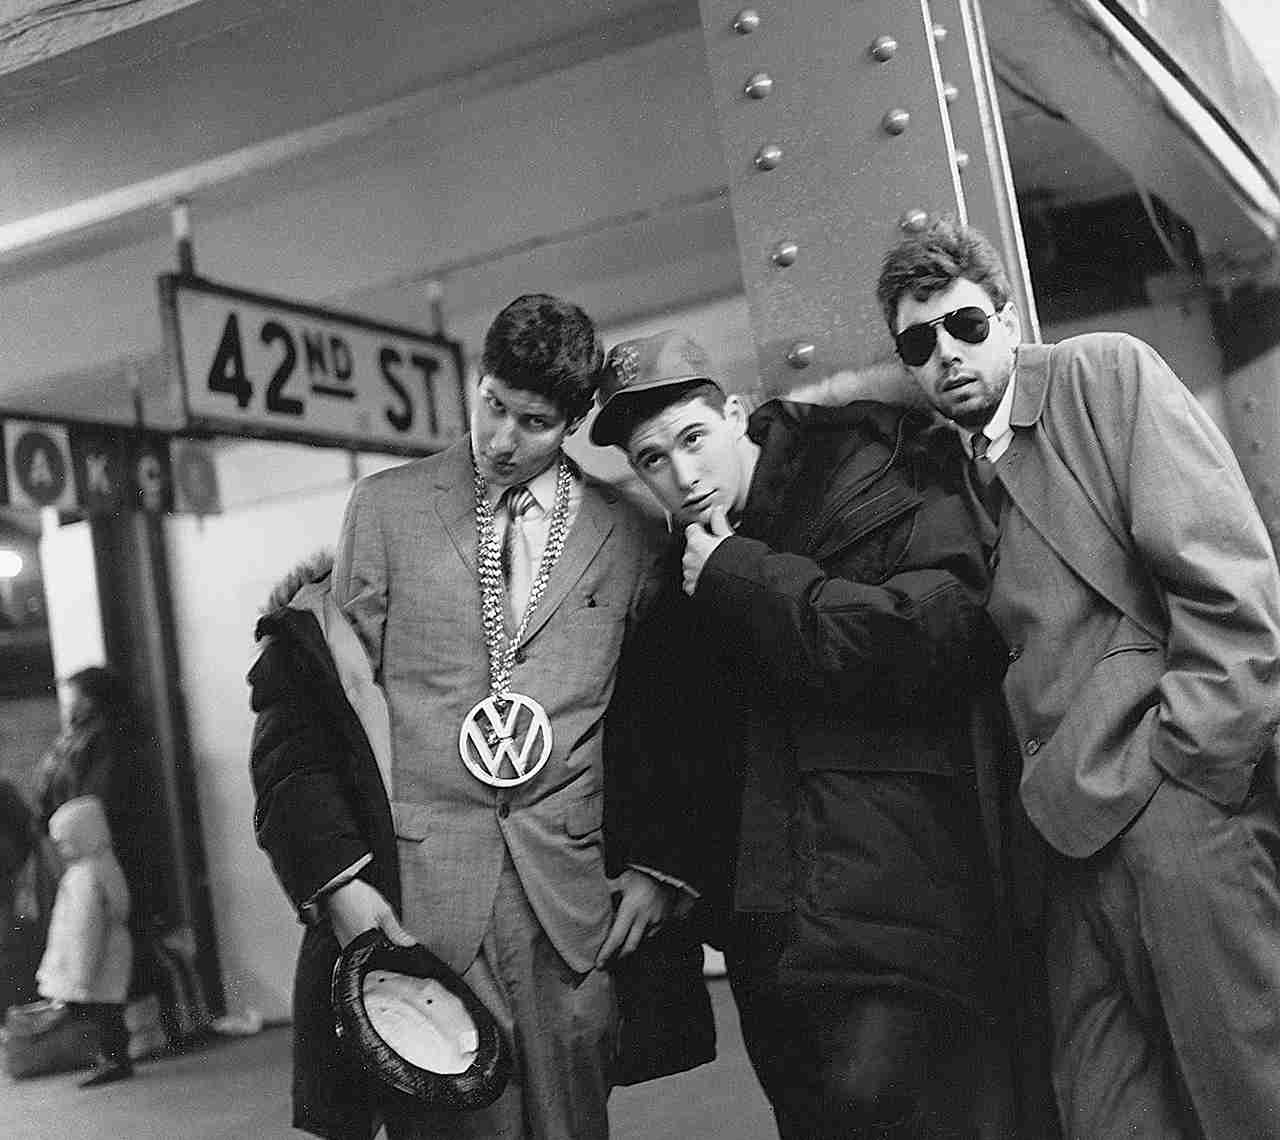 Portrait of the Beastie Boys at the West 42th street/Times Square subway station. (Photo by Michel Delsol/Getty Images)